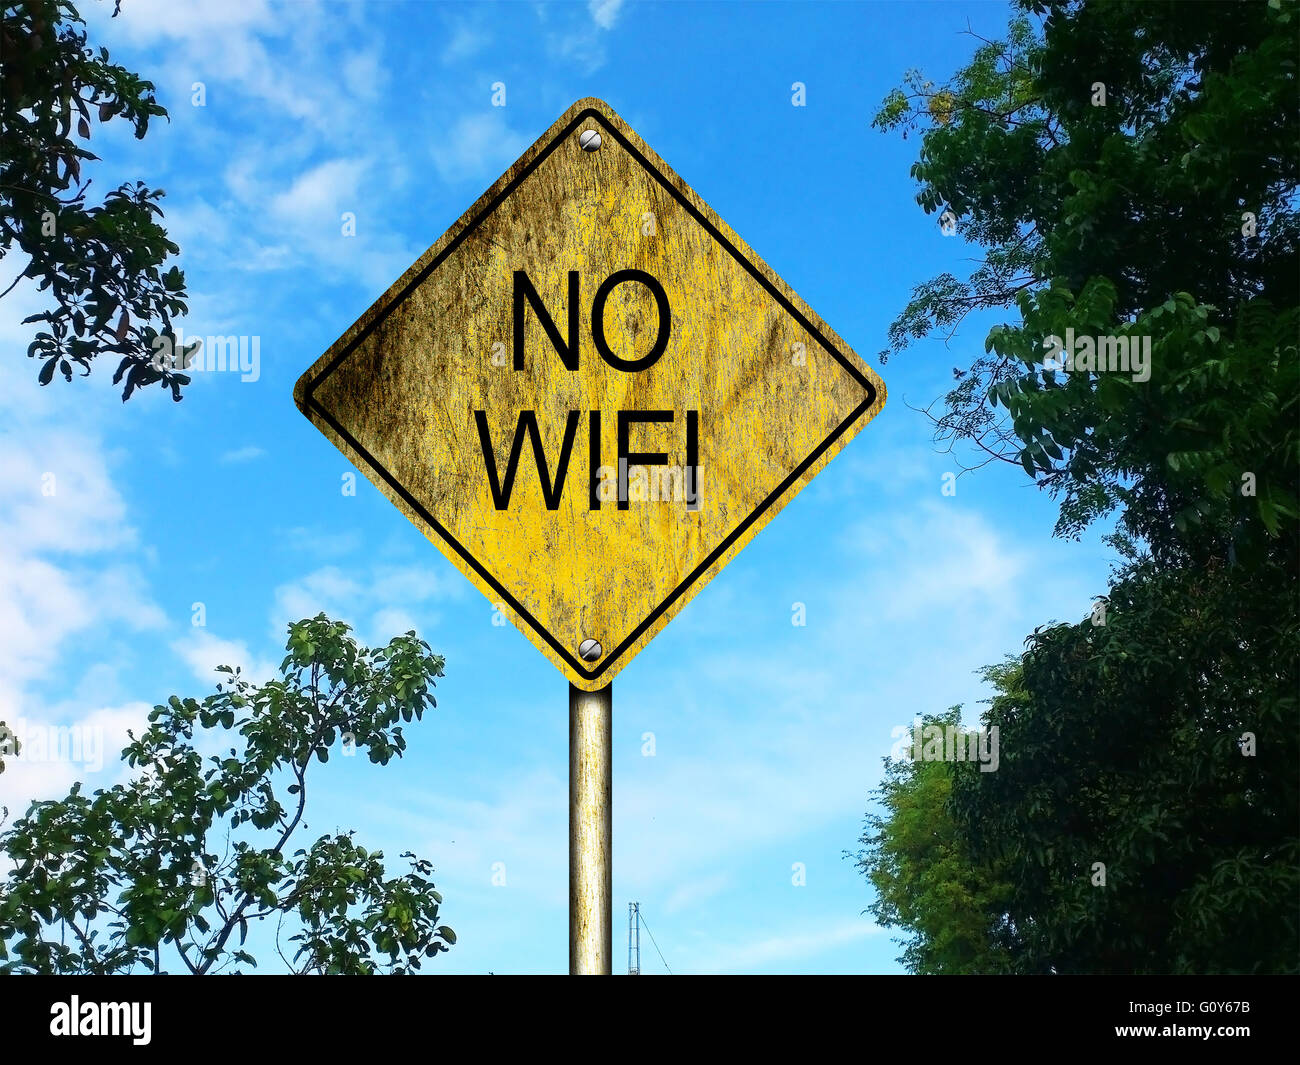 Pas de Wifi Road Sign Photo Stock